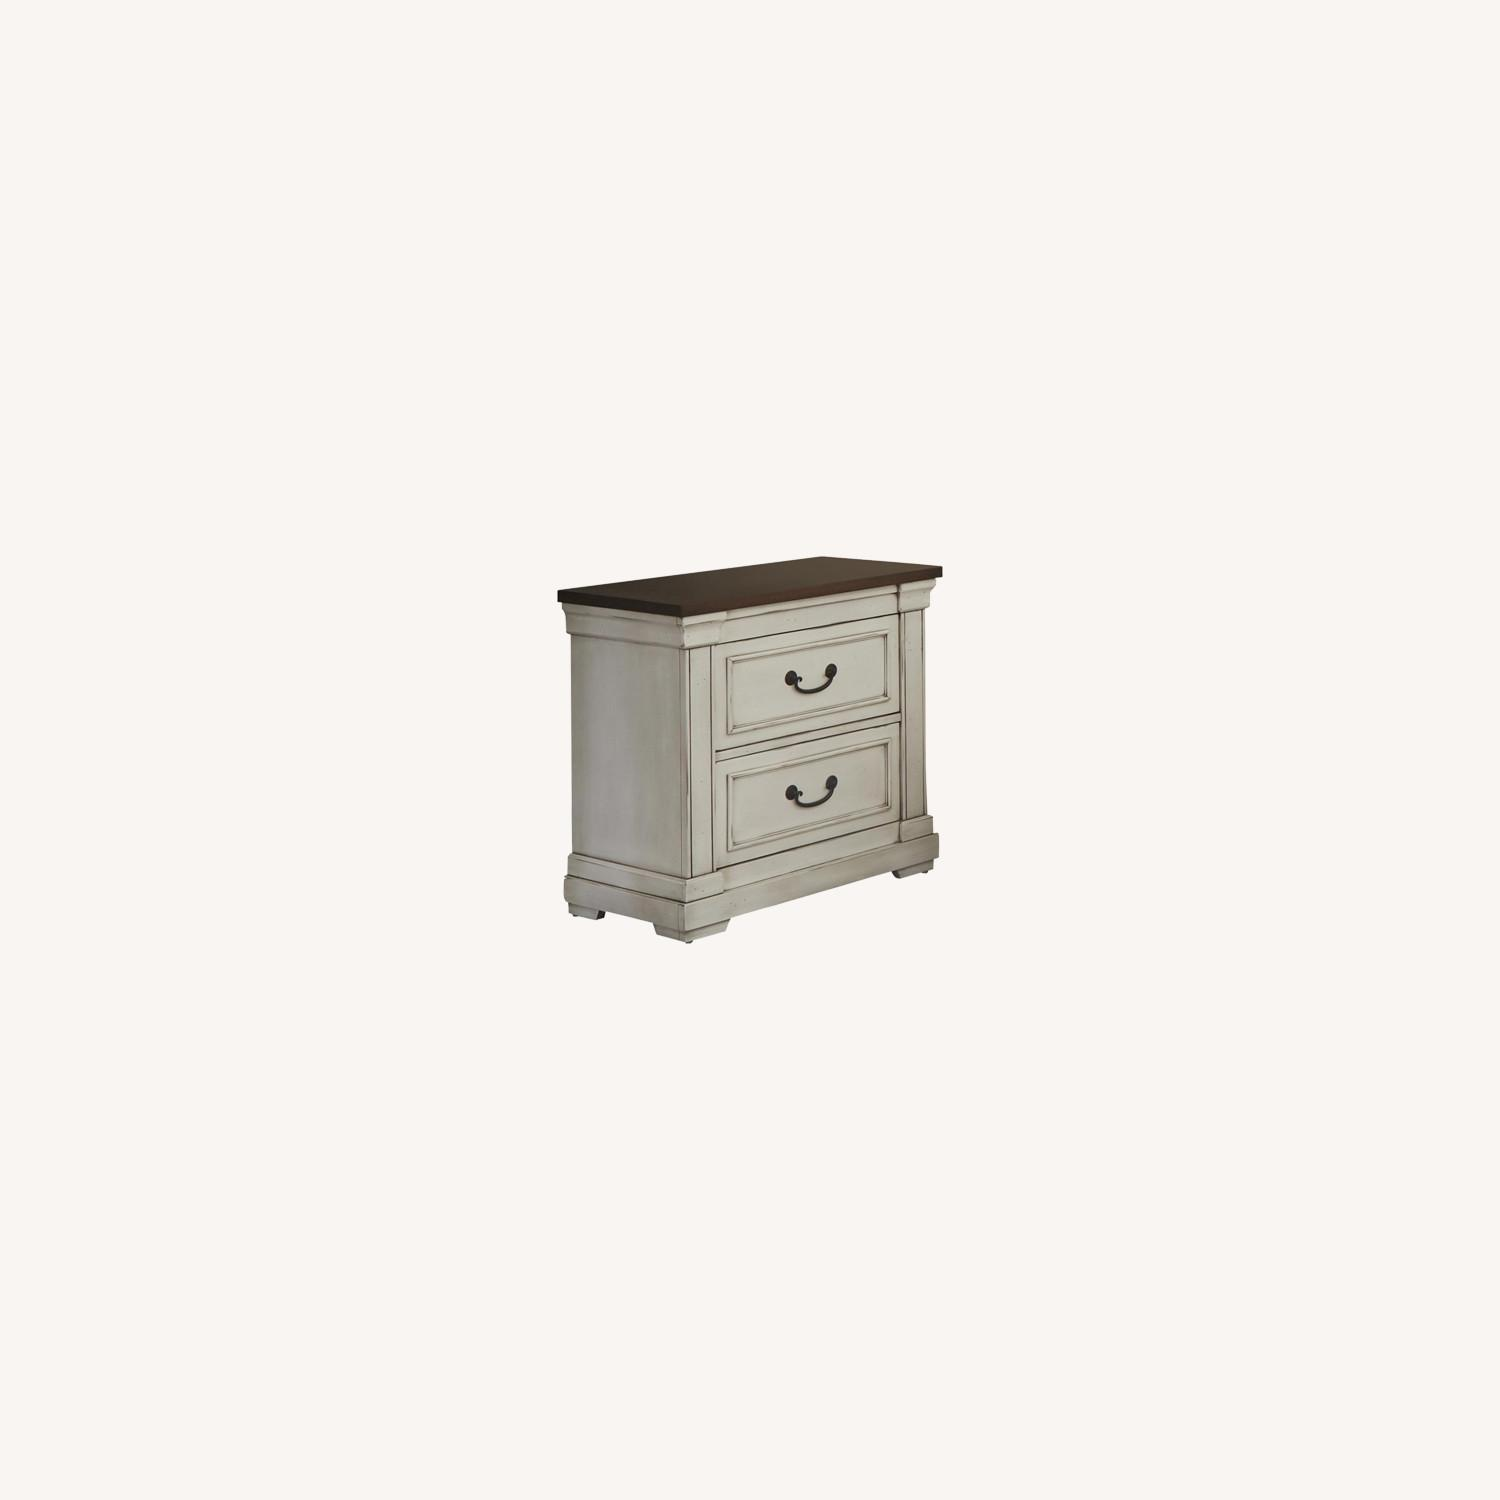 Nightstand W/ 2 Drawers In Dark Rum Finish - image-3